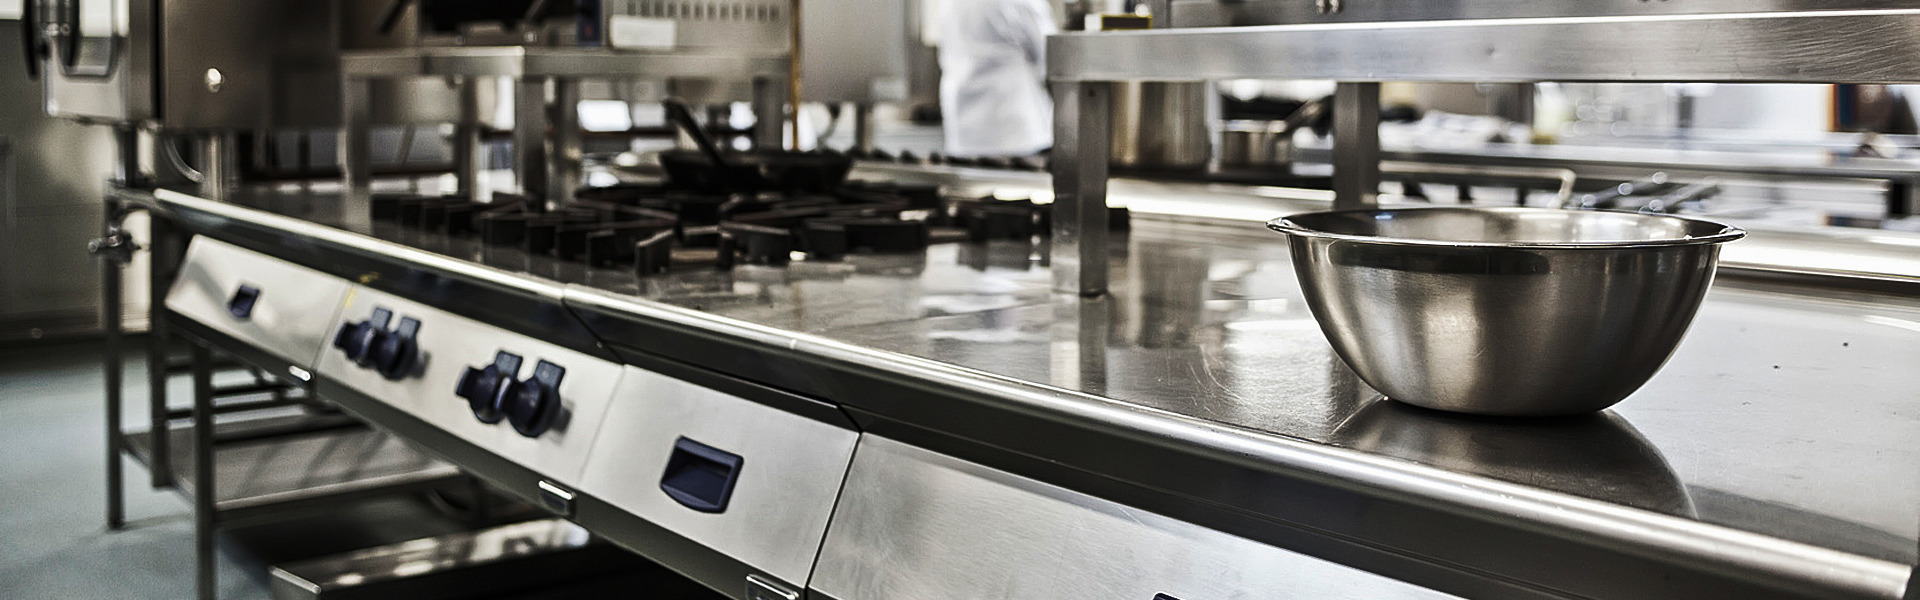 Full Service Restaurant Equipment